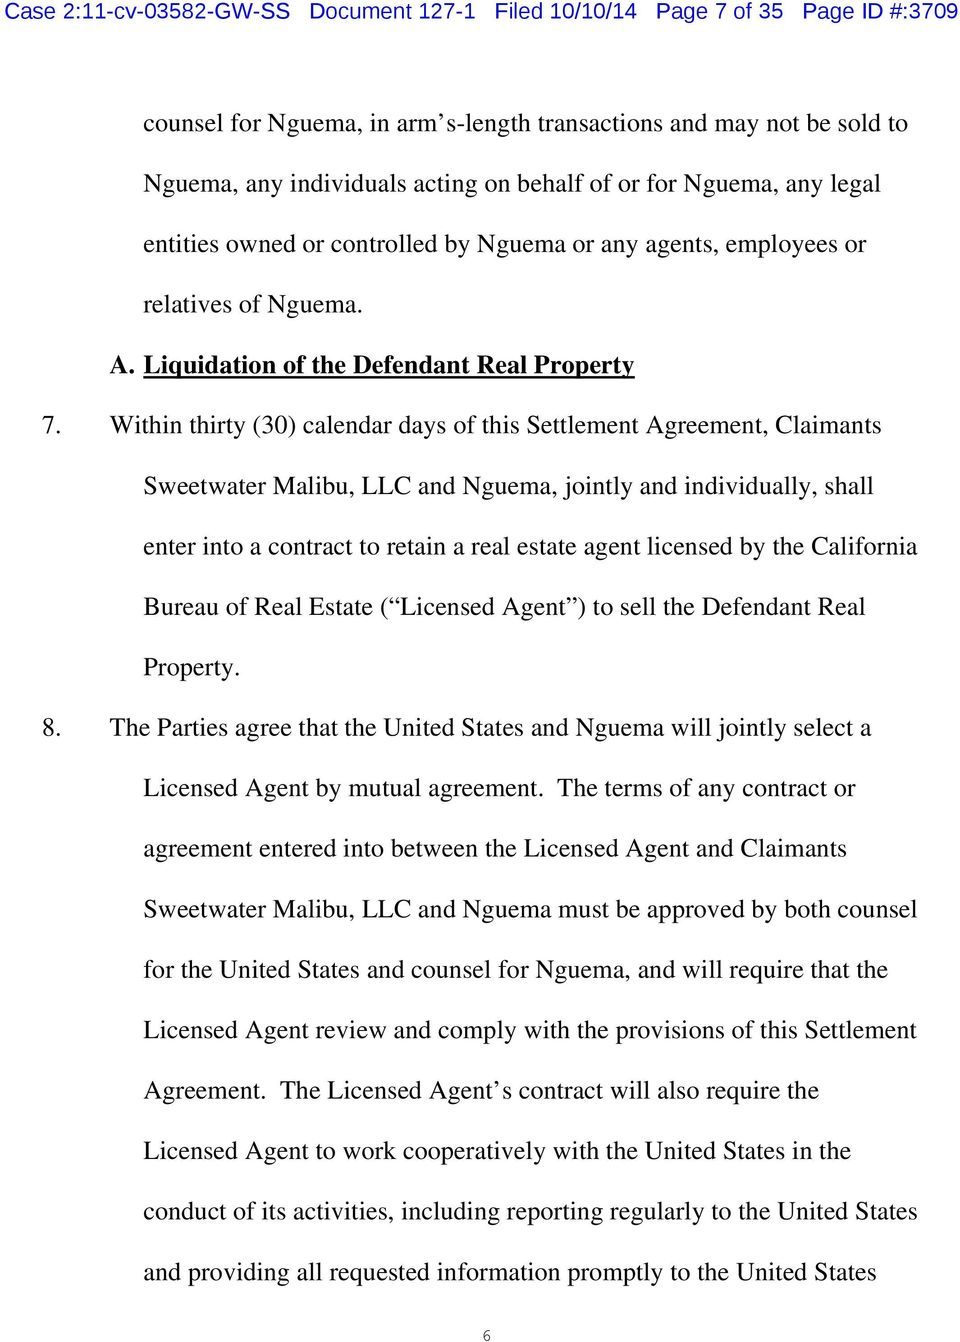 Within thirty (30) calendar days of this Settlement Agreement, Claimants Sweetwater Malibu, LLC and Nguema, jointly and individually, shall enter into a contract to retain a real estate agent